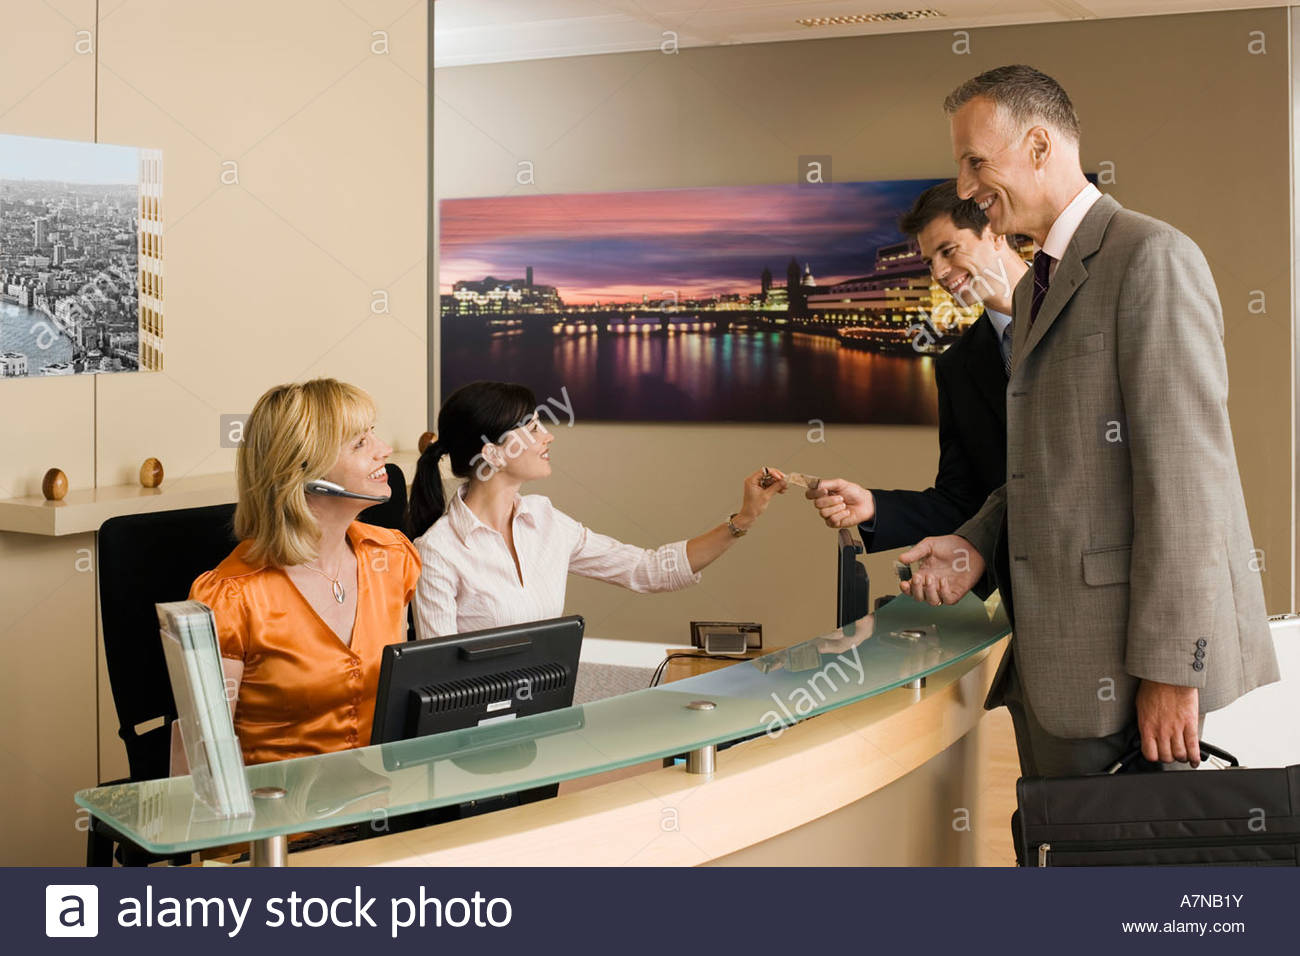 Two receptionists working behind reception desk greeting two businessmen smiling side view - Stock Image